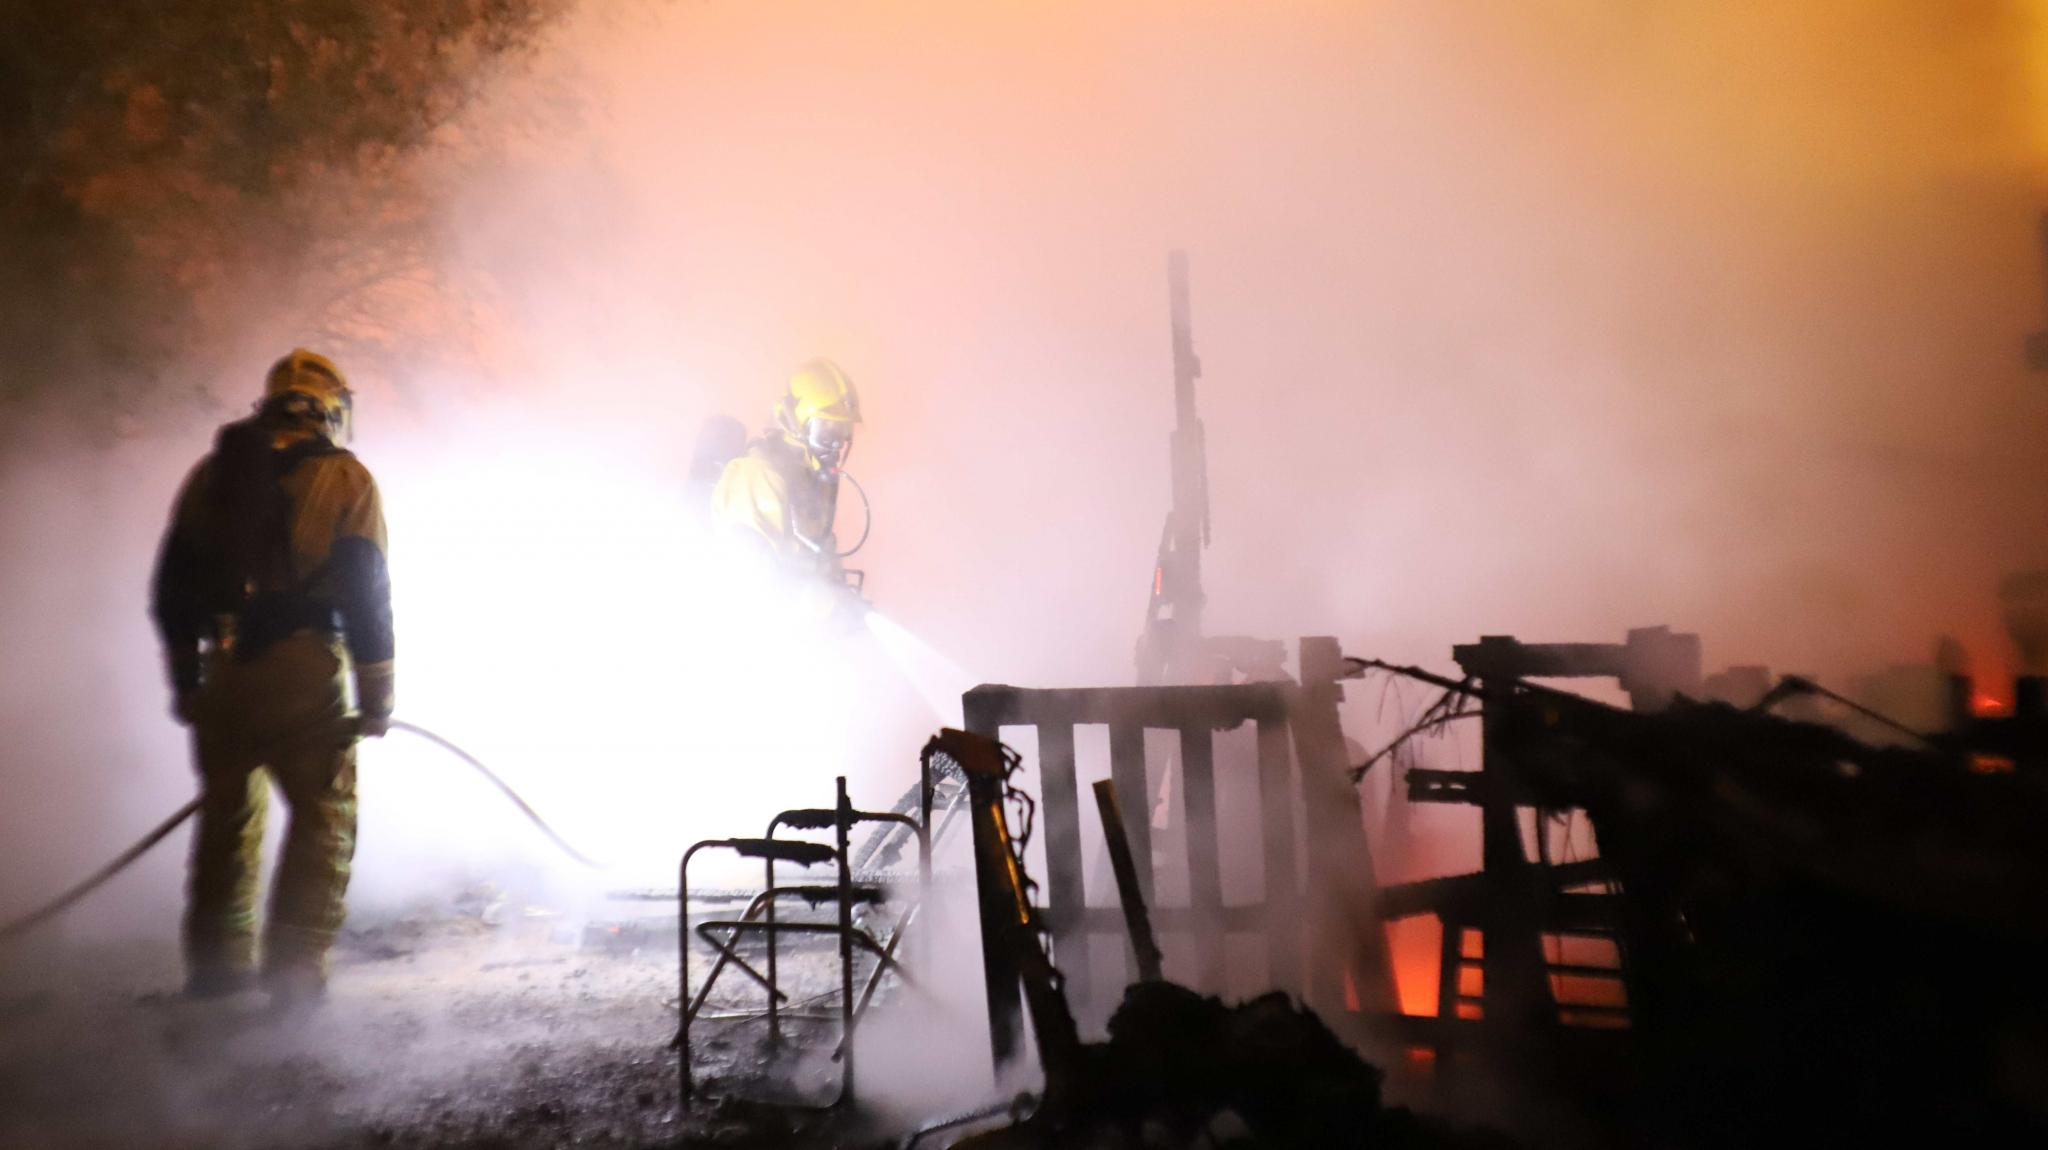 The fire spread to 3 homes in the shanty town